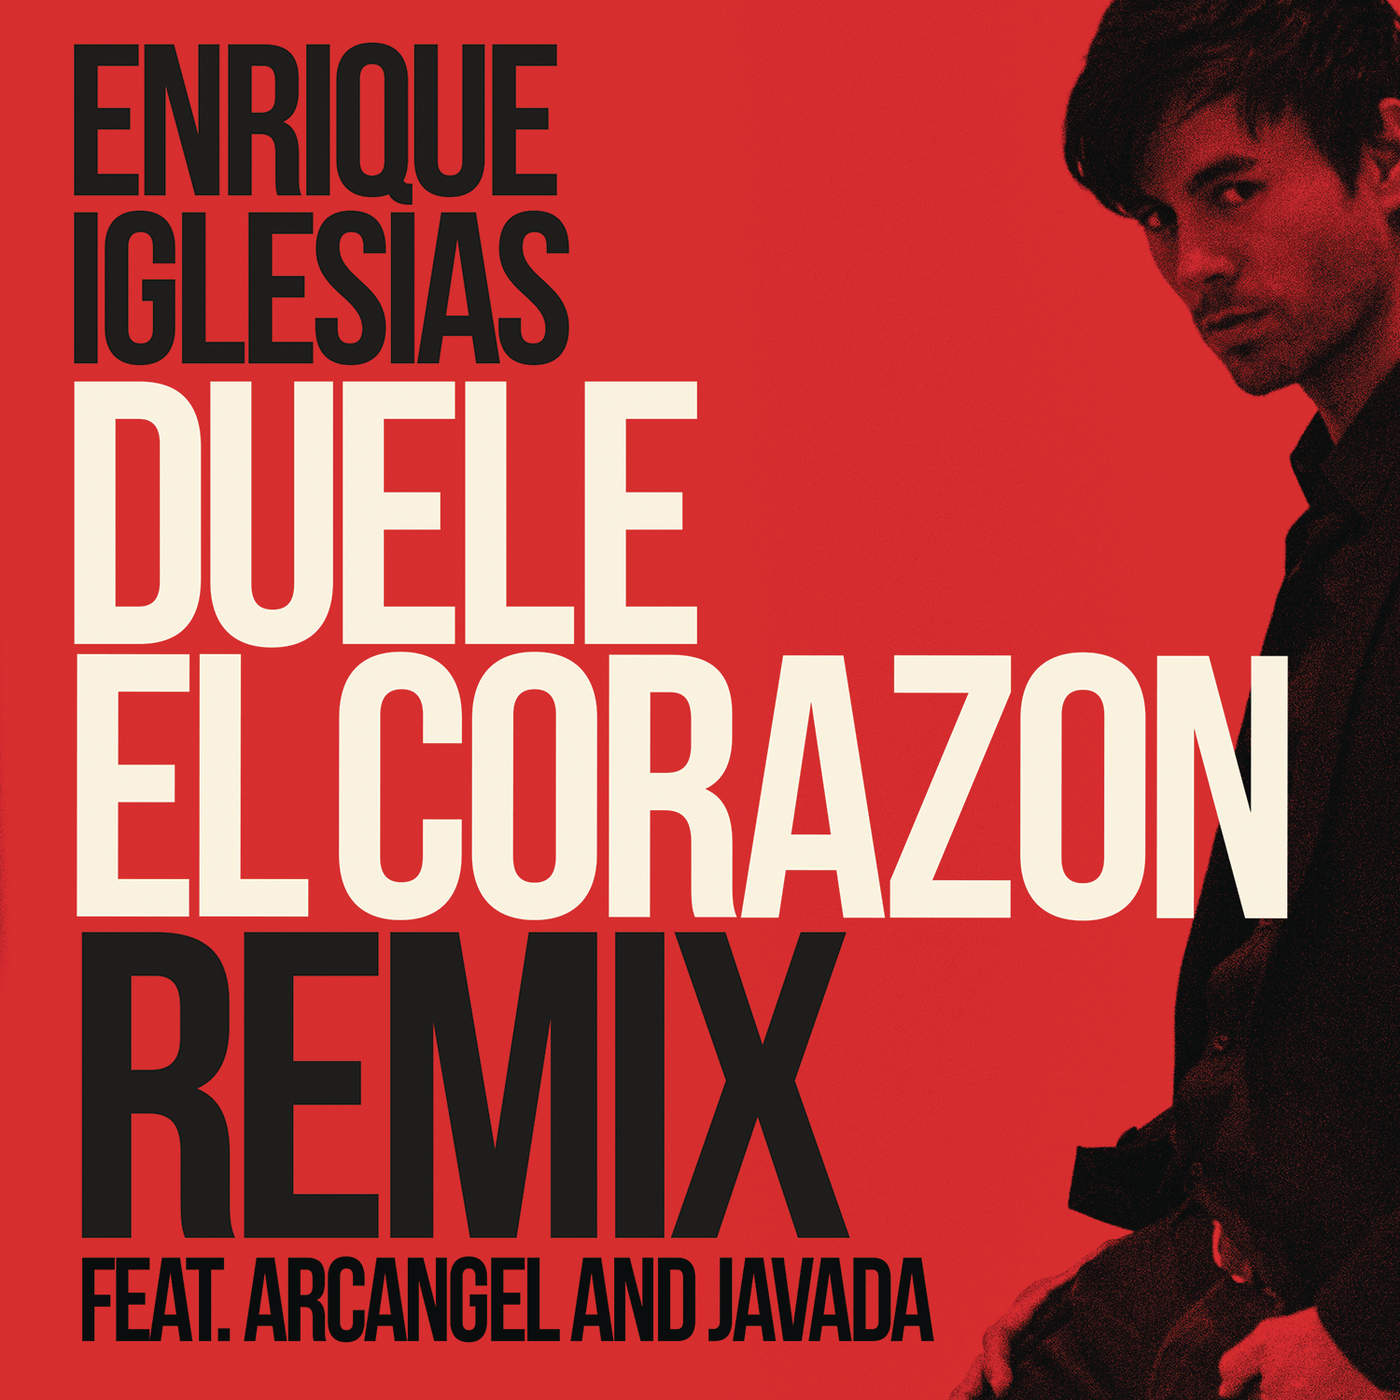 Enrique Iglesias - DUELE EL CORAZON (Remix) [feat. Arcángel & Javada] - Single Cover